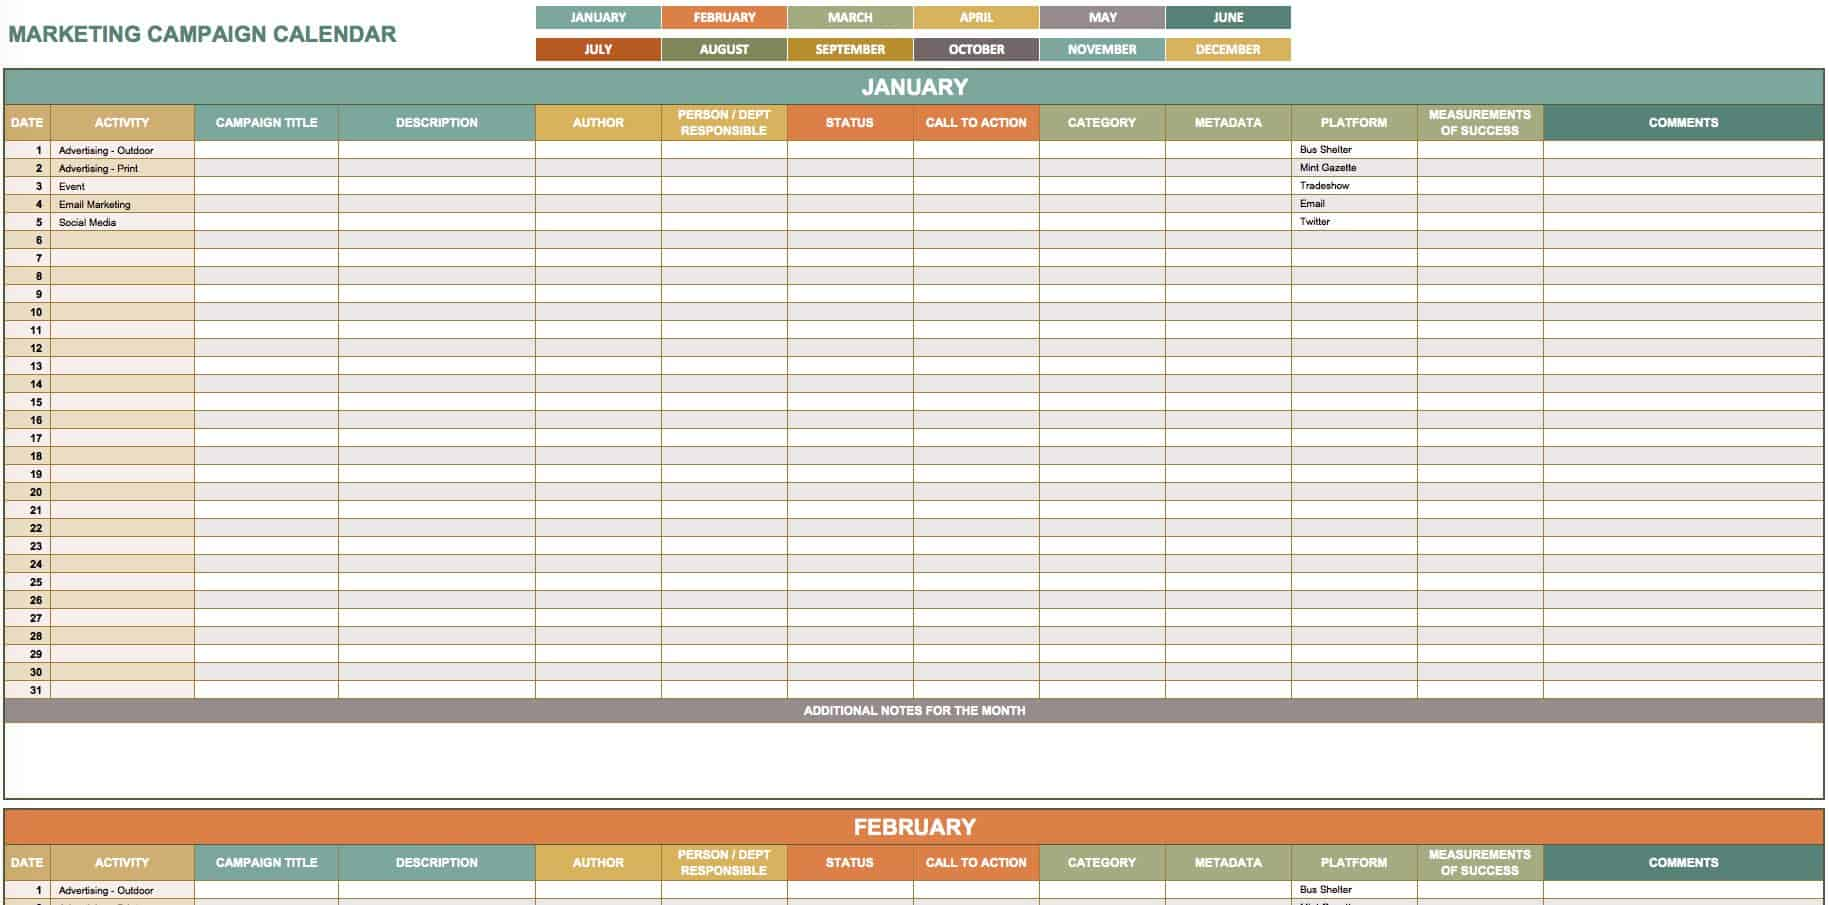 Exceptional Marketing Campaign Calendar Template Amazing Design